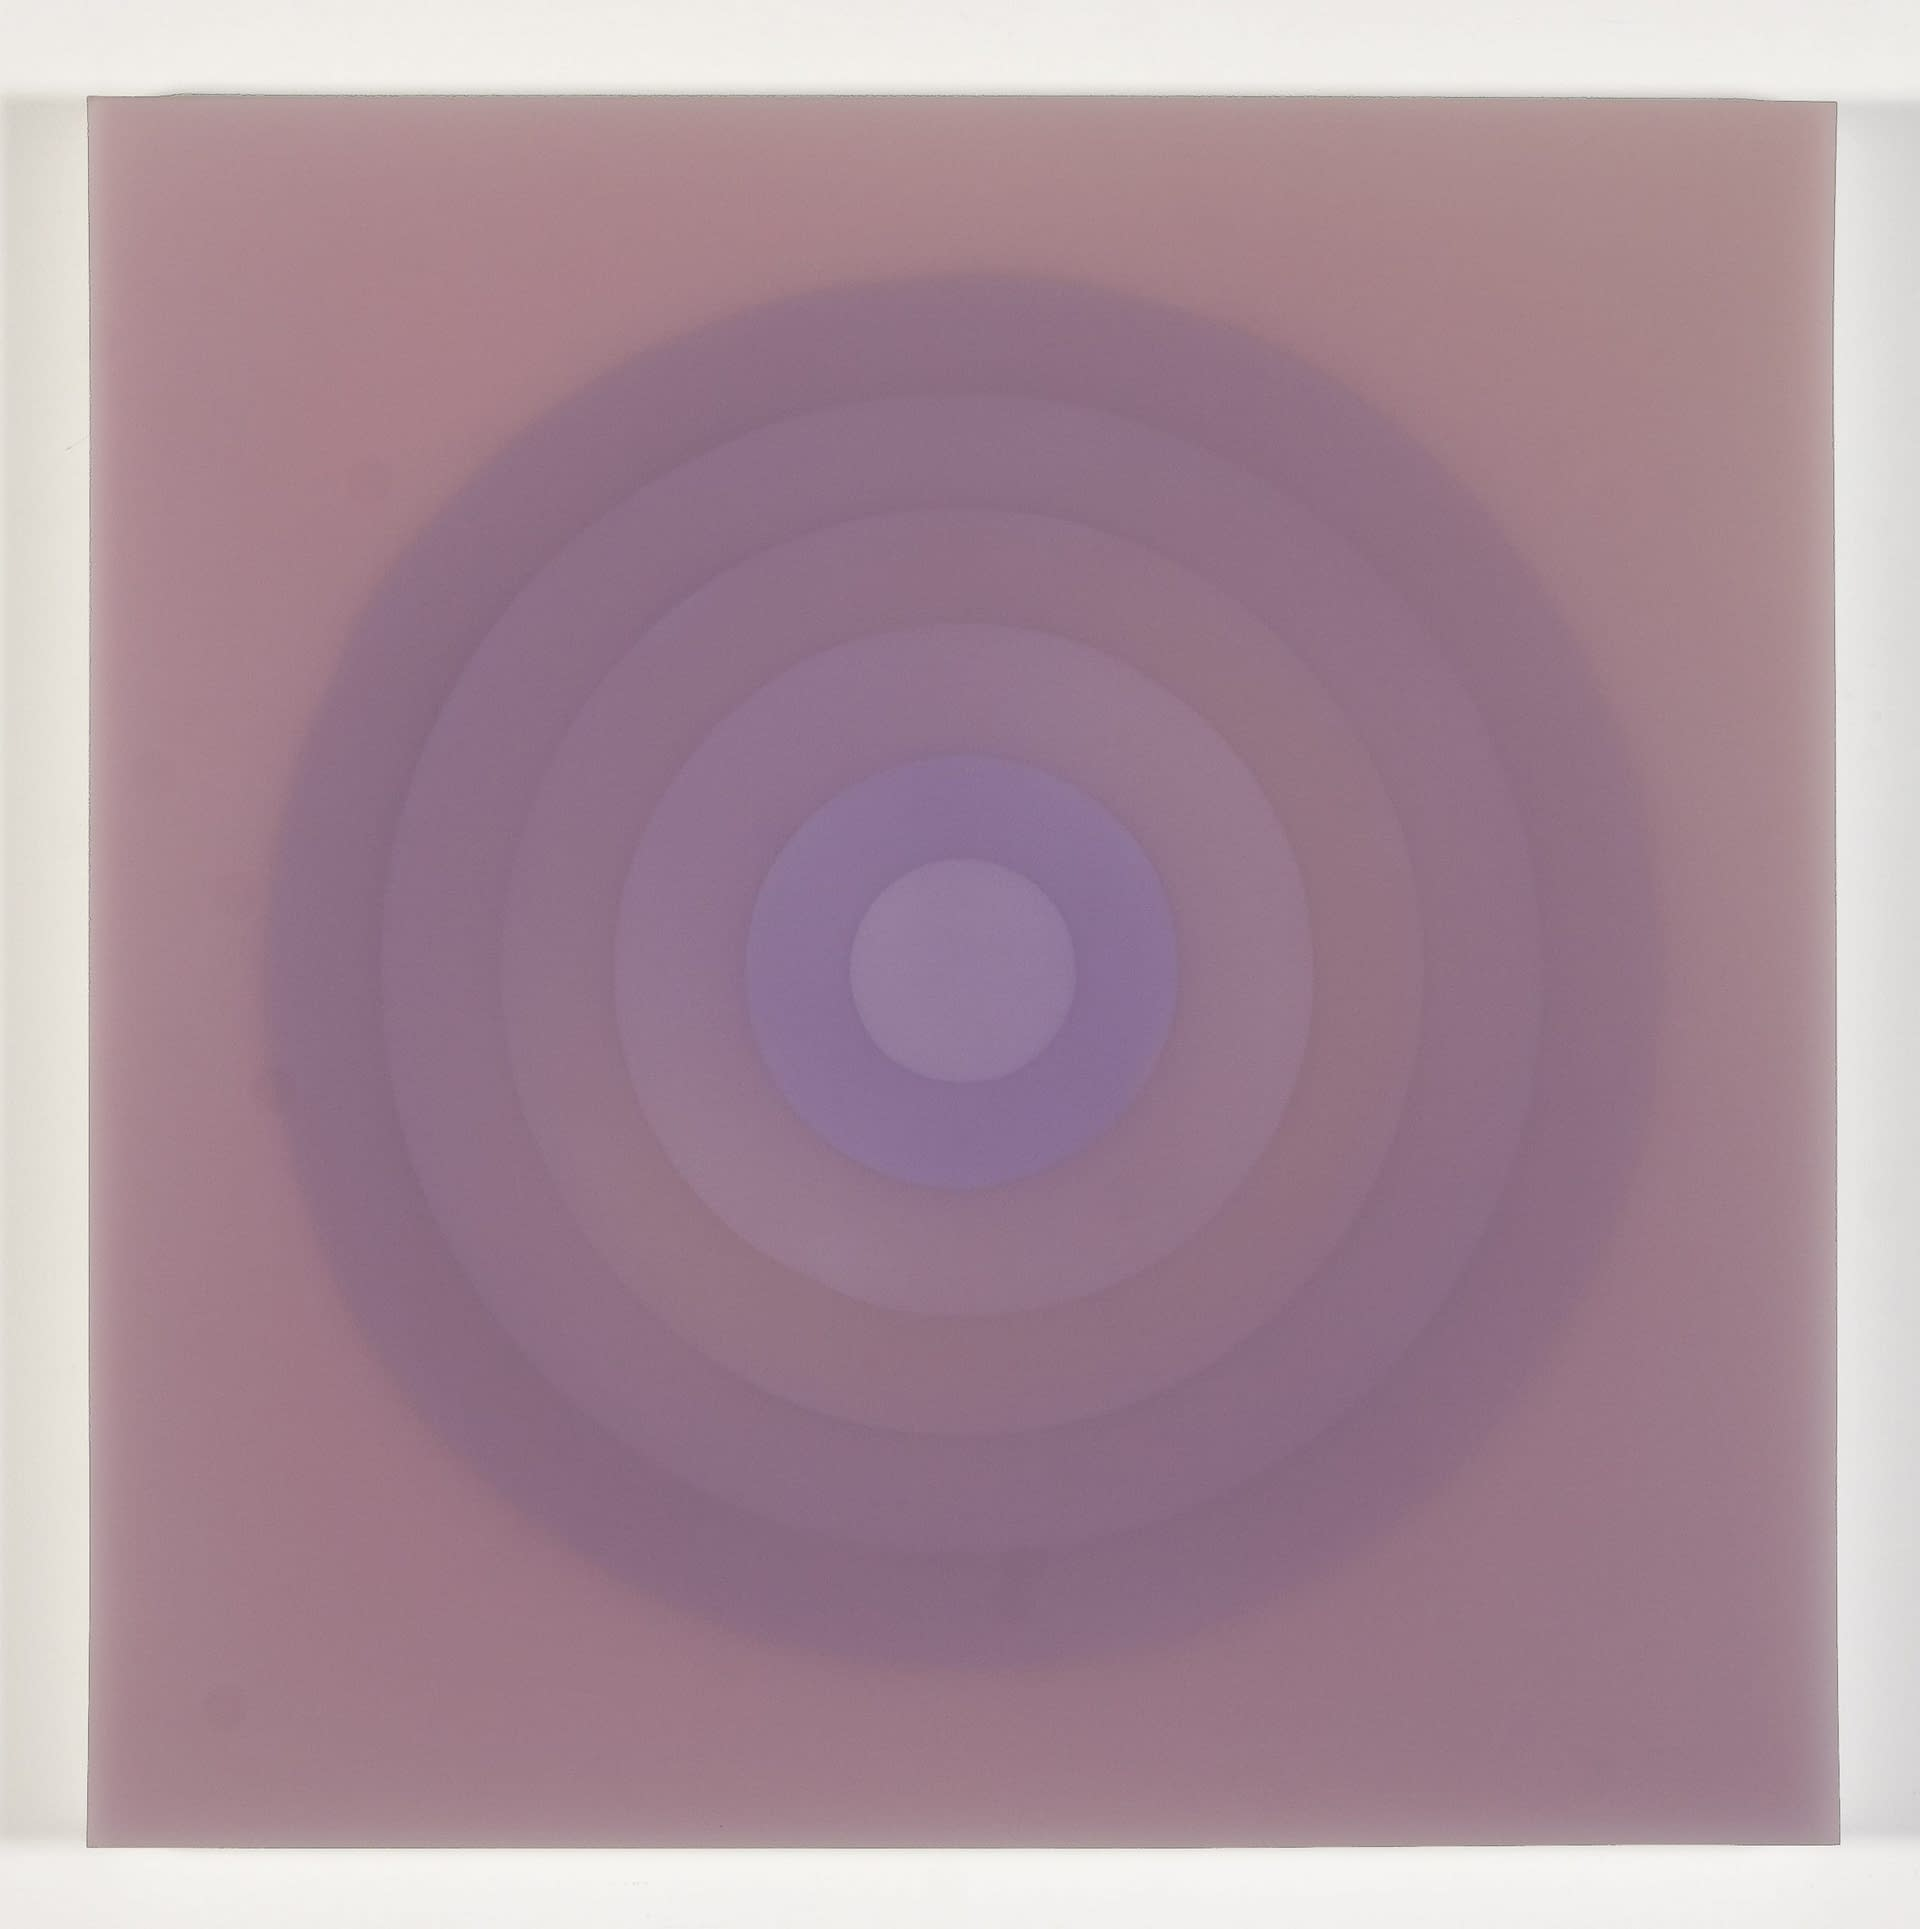 rise_no._1_lisa_bartleson_cast_bioresin_pigment_on_formed_canvas_30_x_30